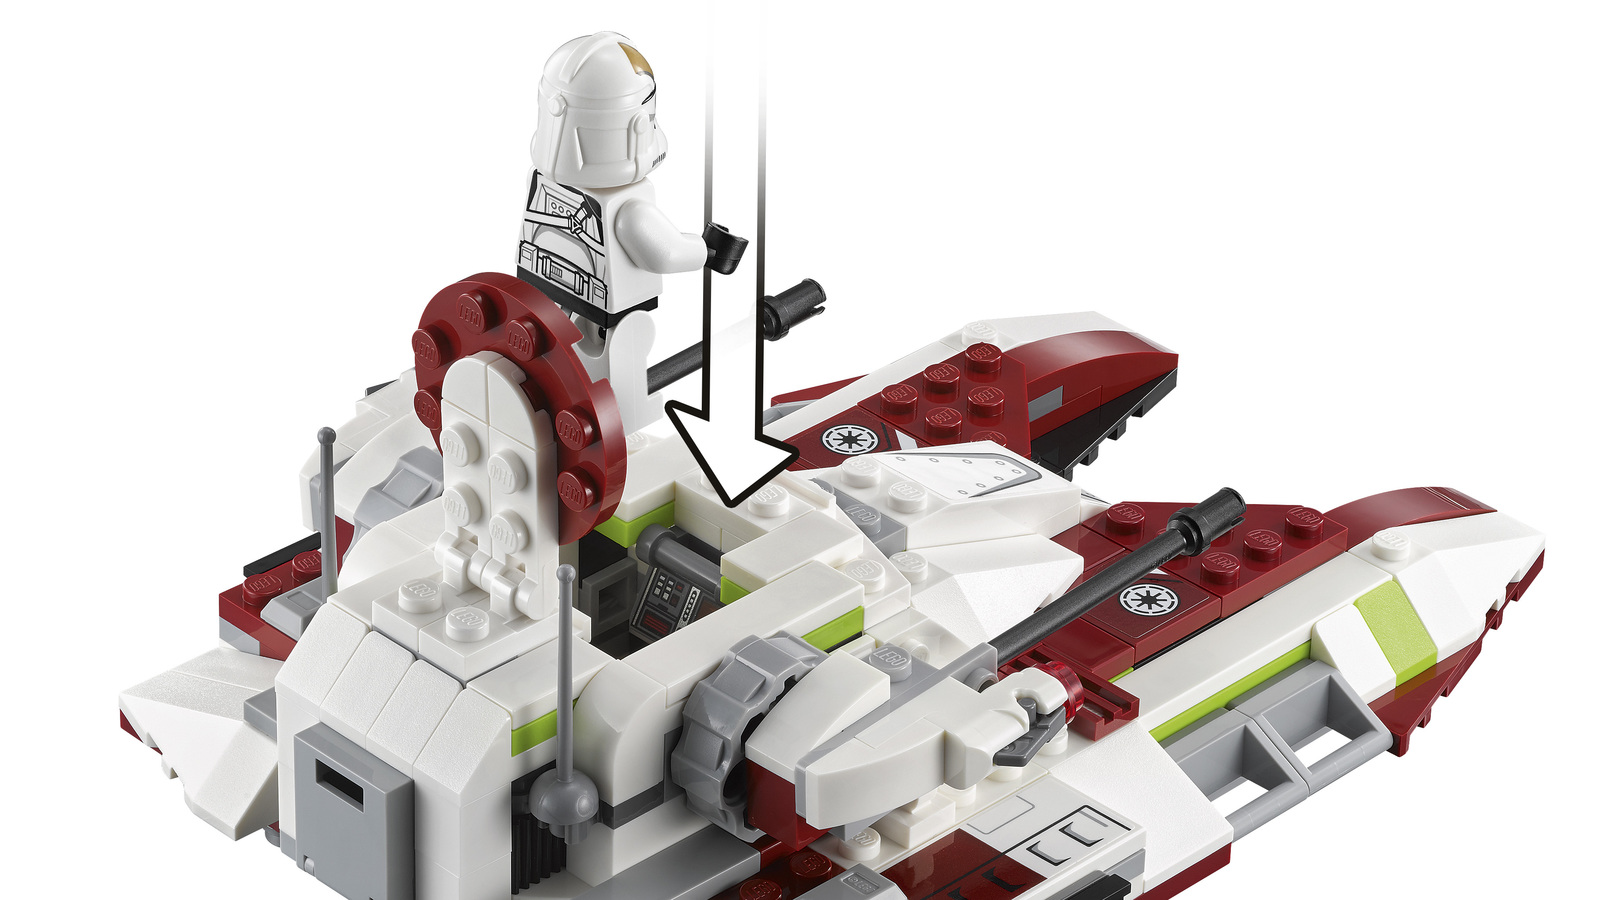 LEGO Star Wars - Republic Fighter Tank (75182) image